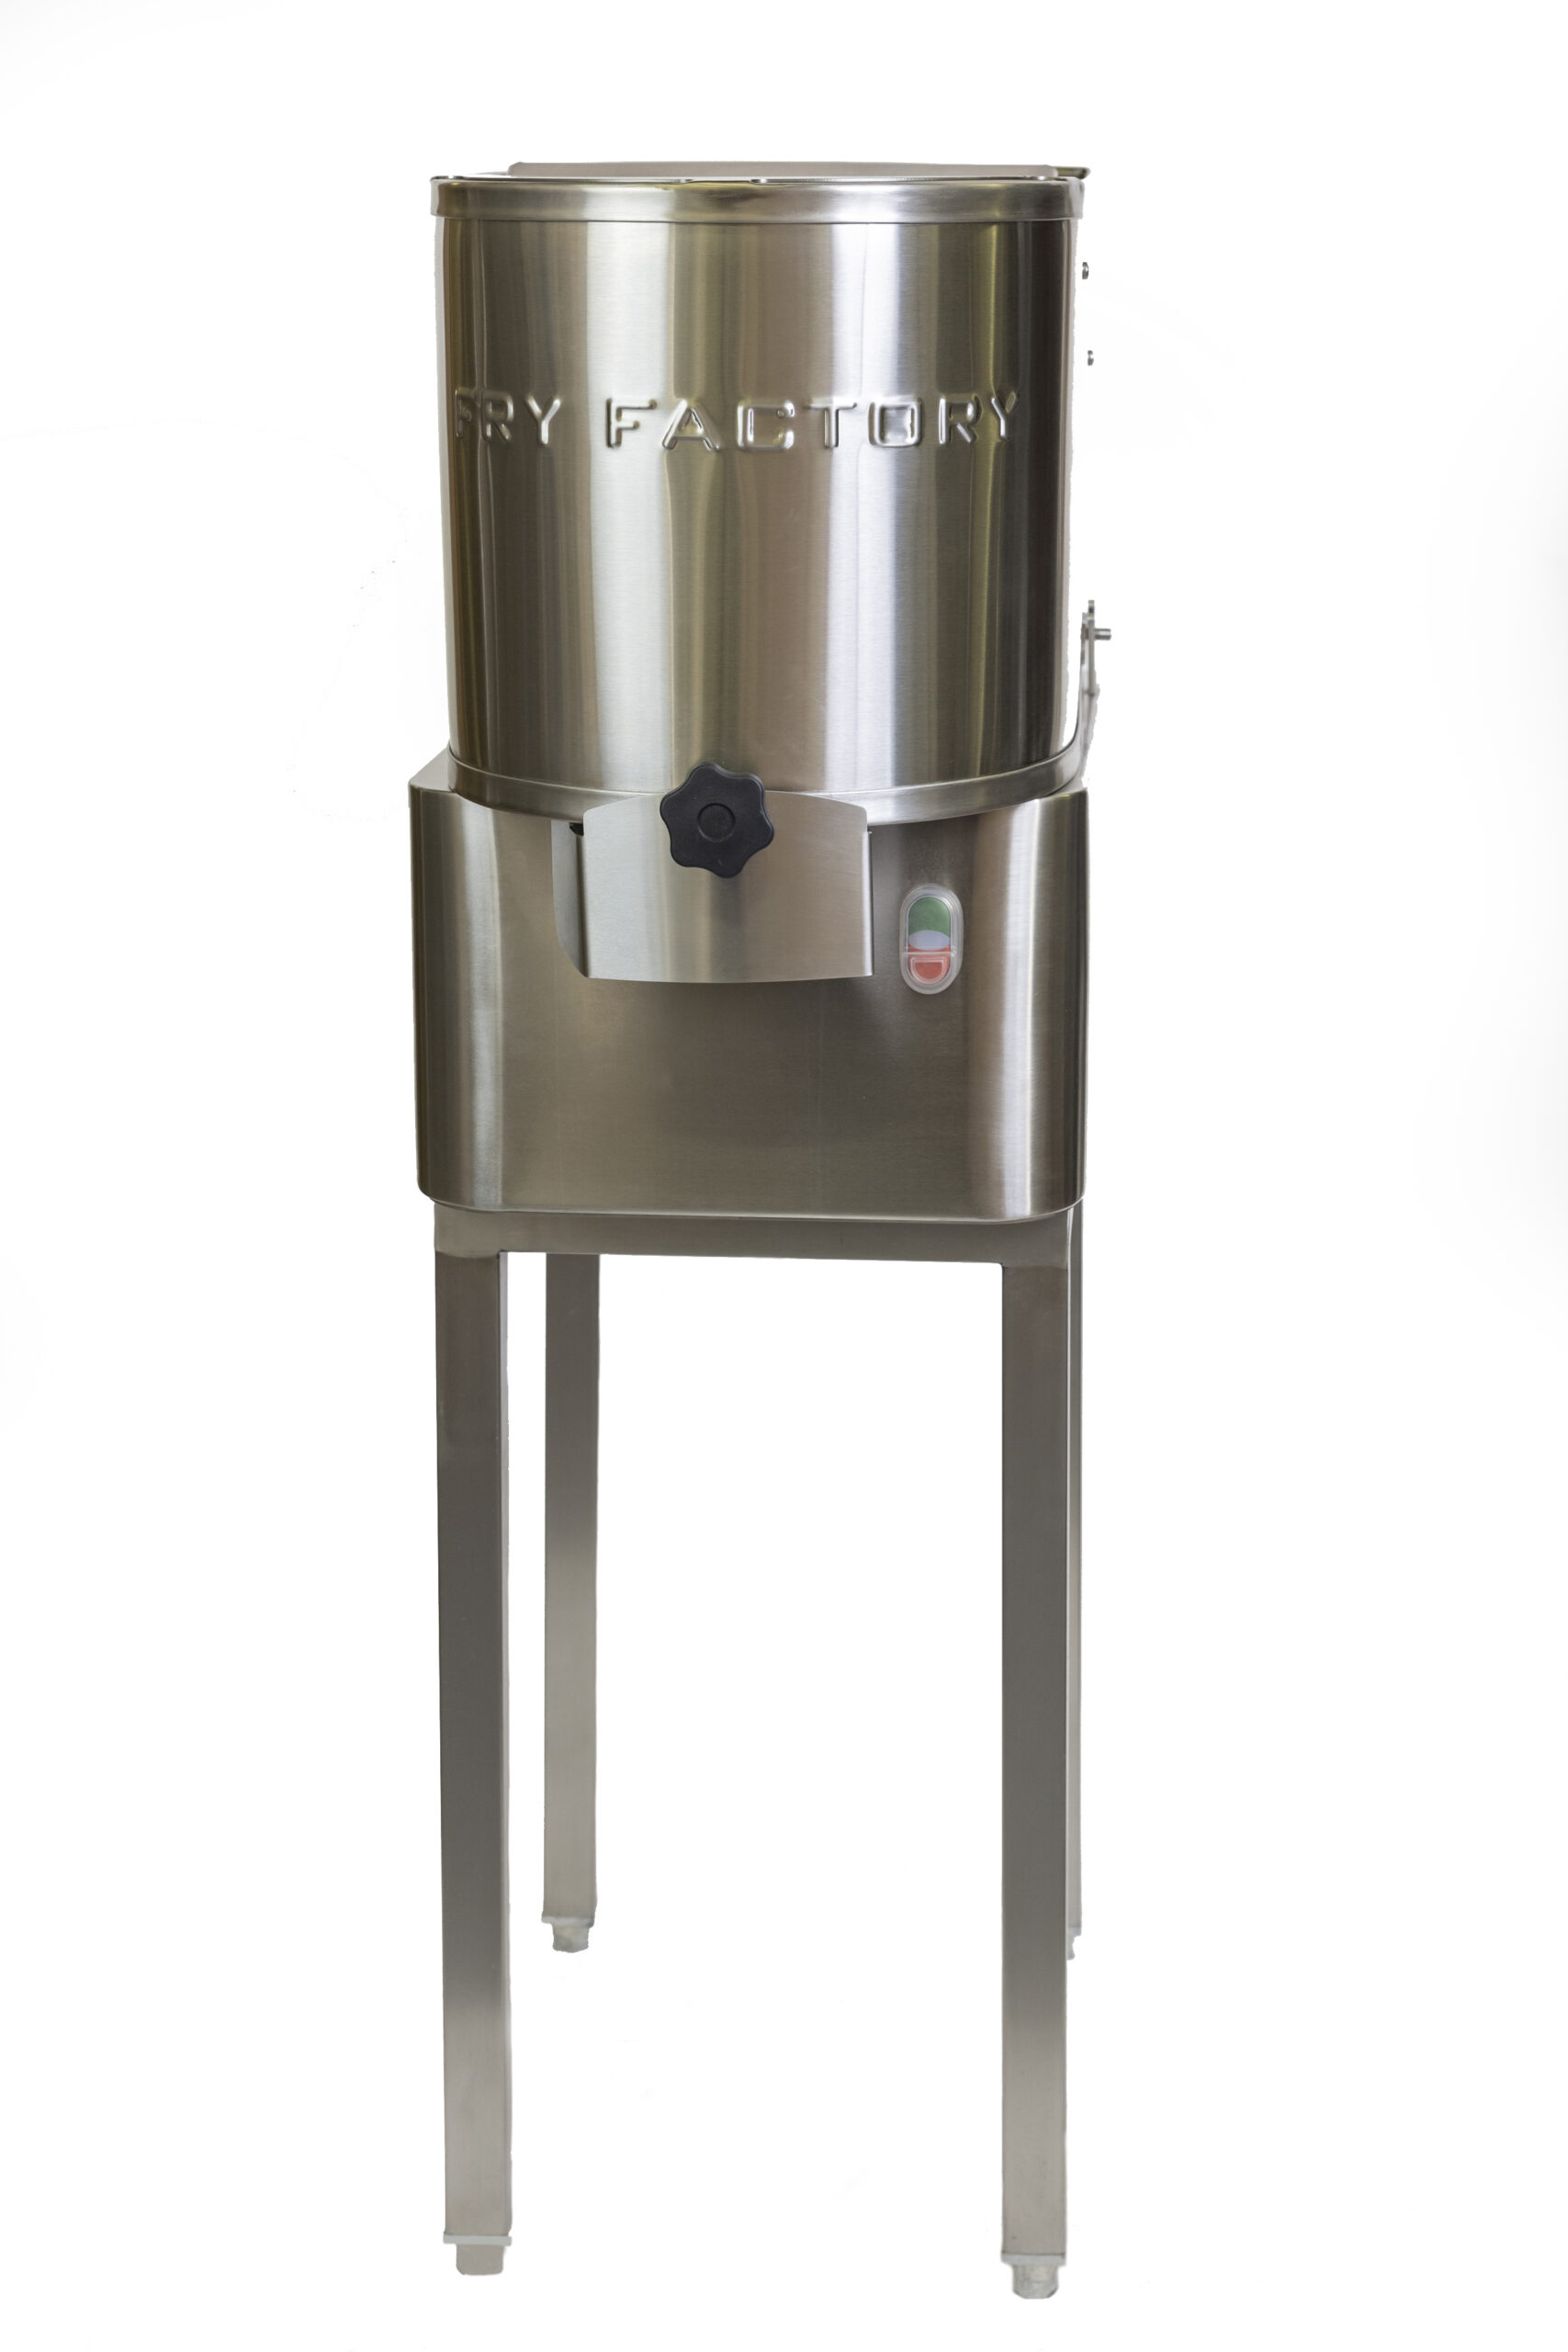 AFC-50 french fry cutter